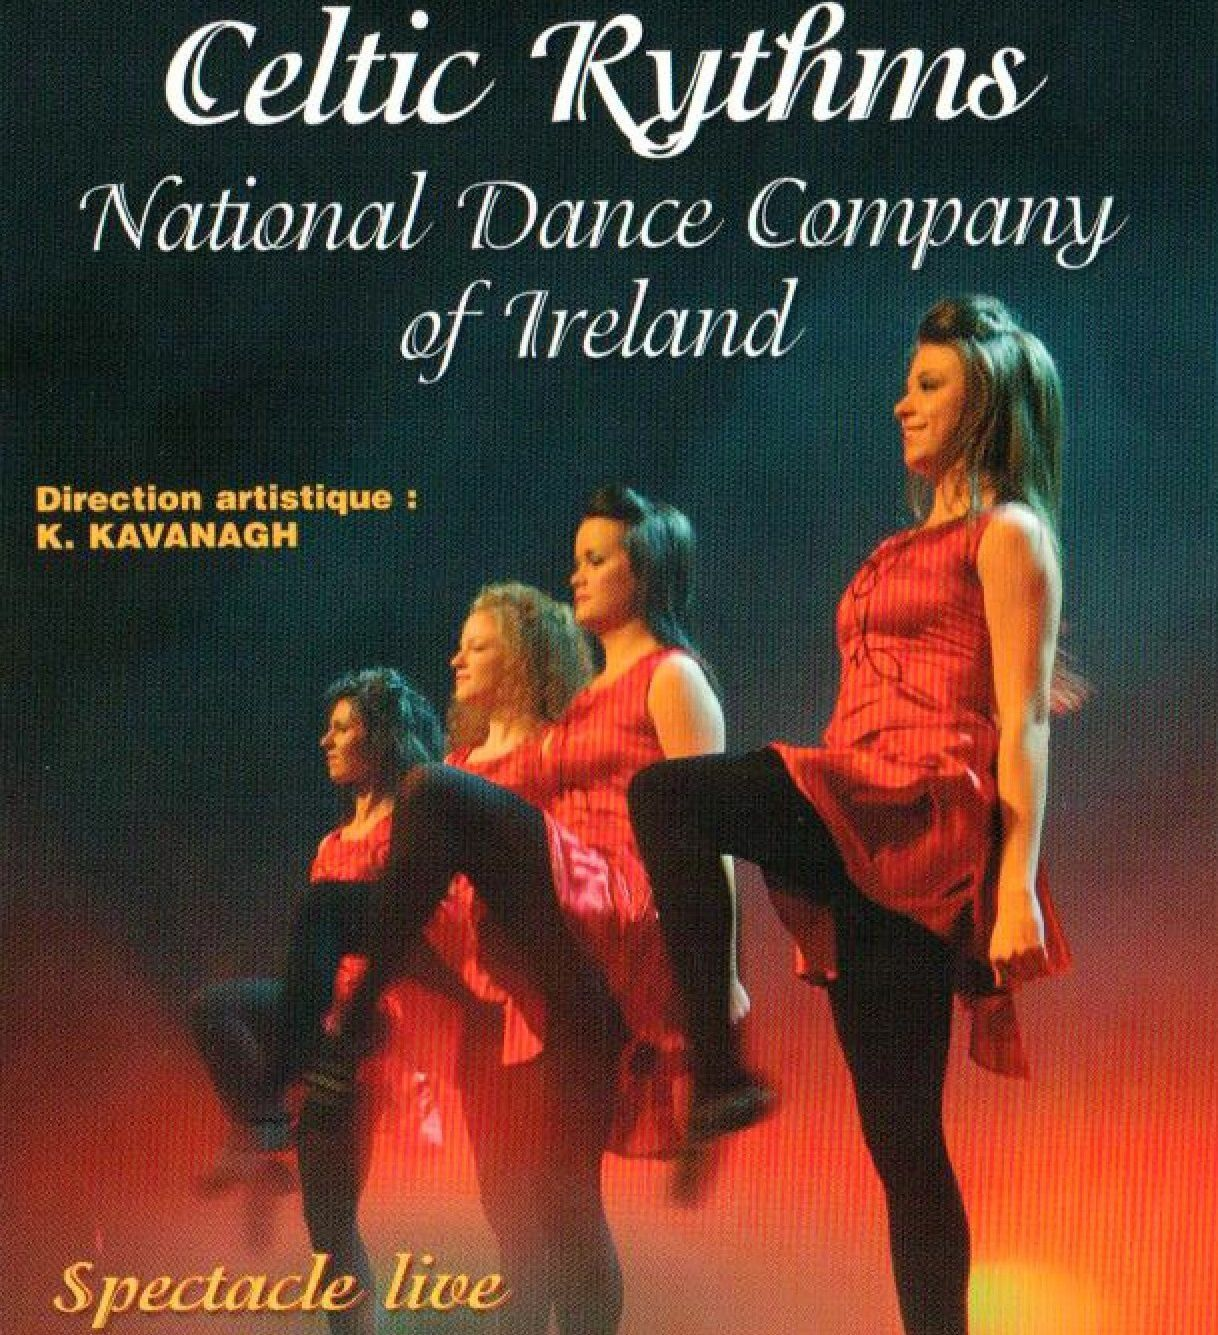 MENTON: CELTIC RYTHMS  NATIONAL DANCE COMPANY OF IRELAND